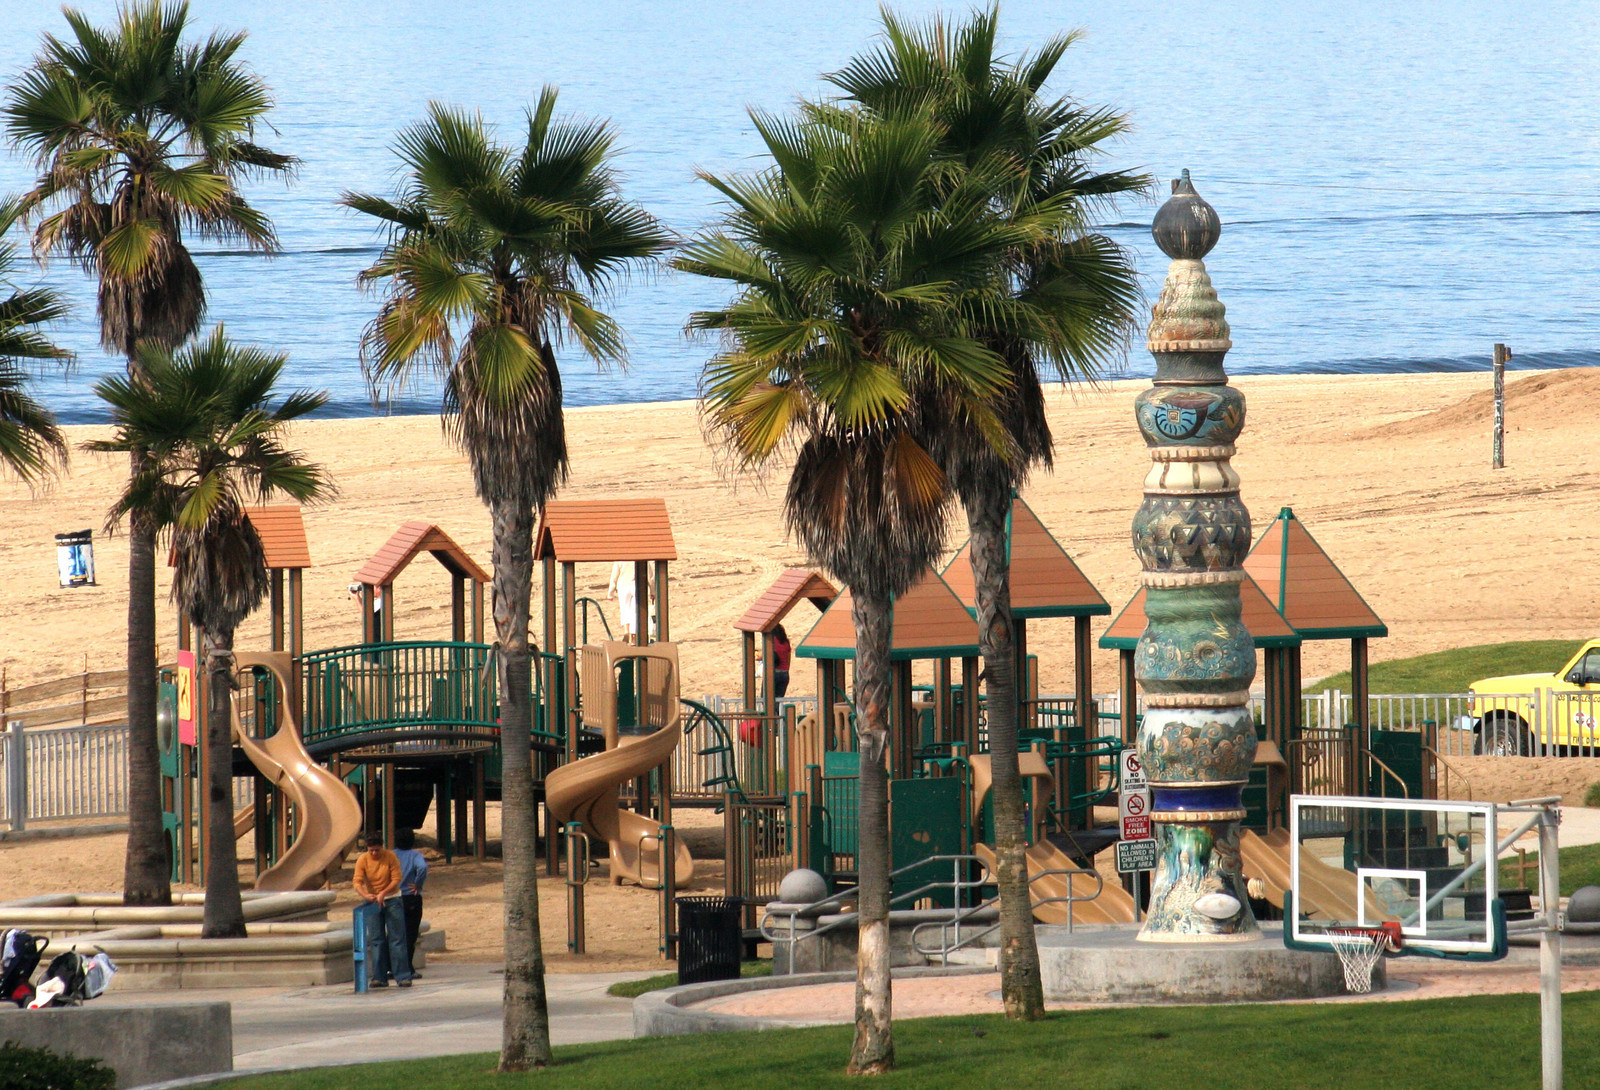 Venice Beach Children's Playground, photo by Venice Paparazzi